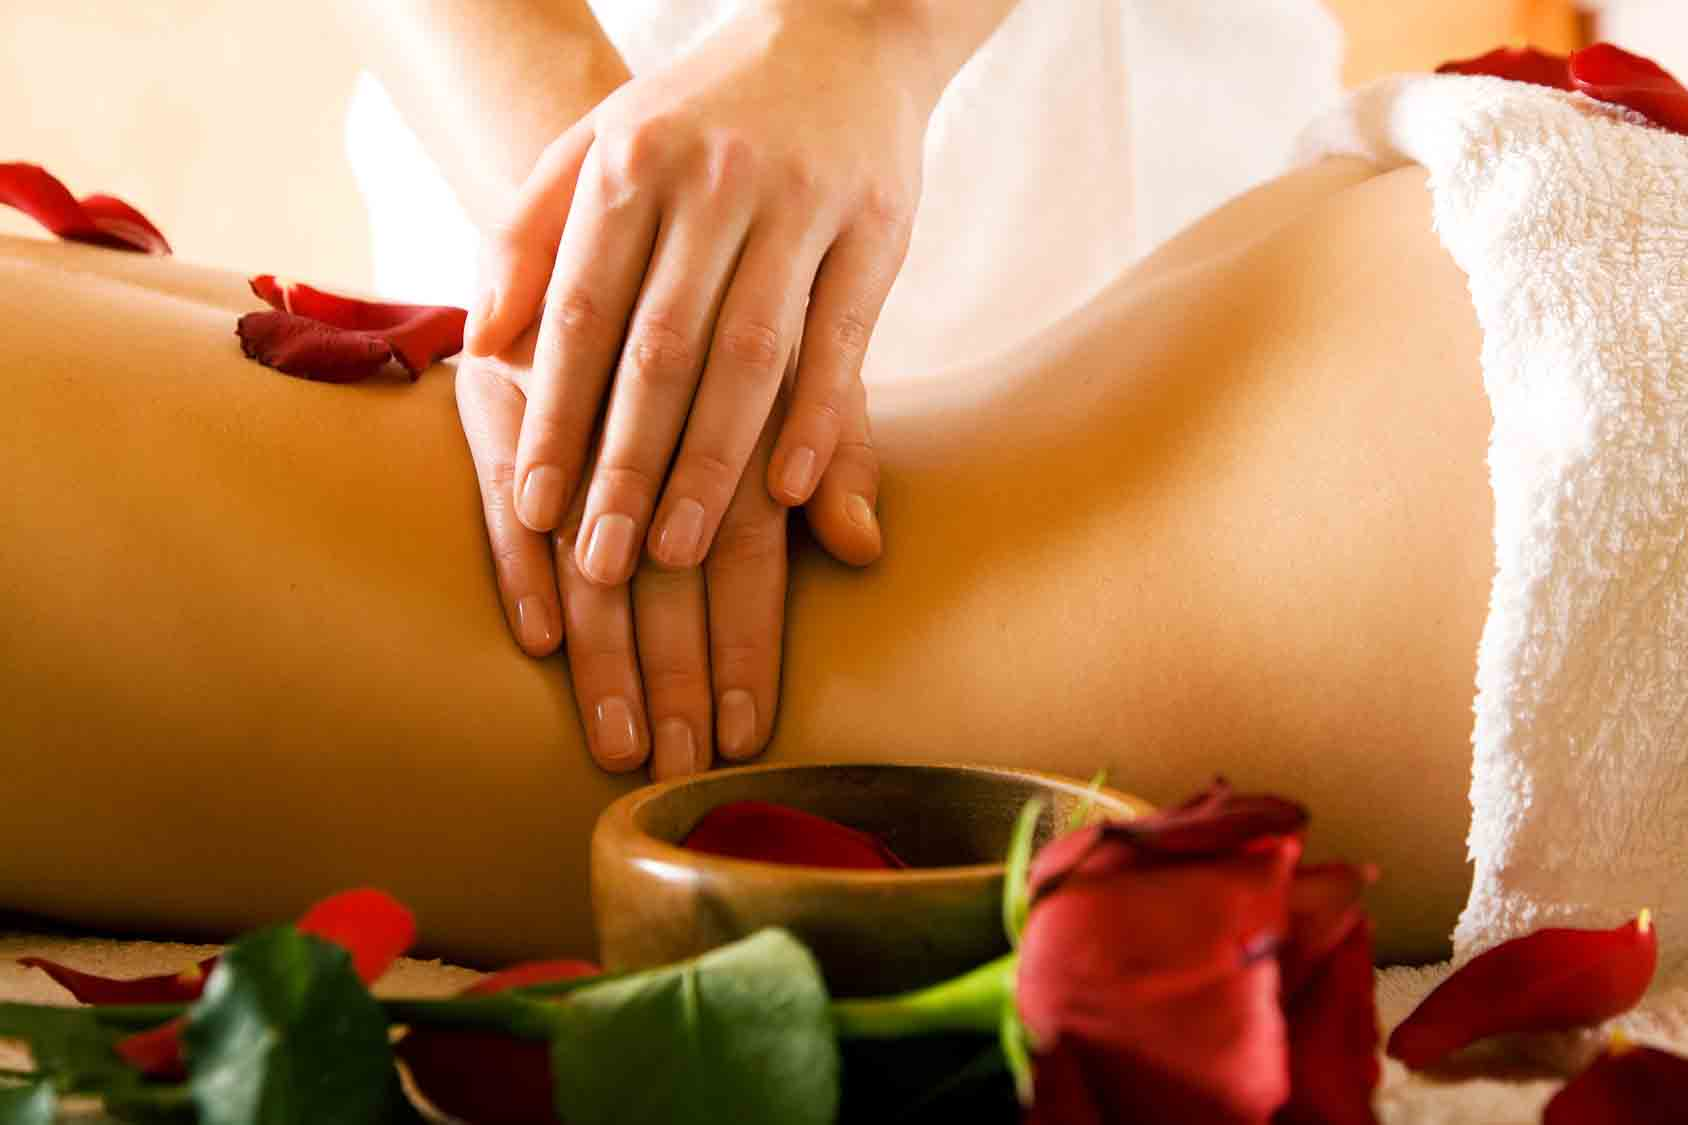 ra massage erotique voiron salon massage erotique annecy